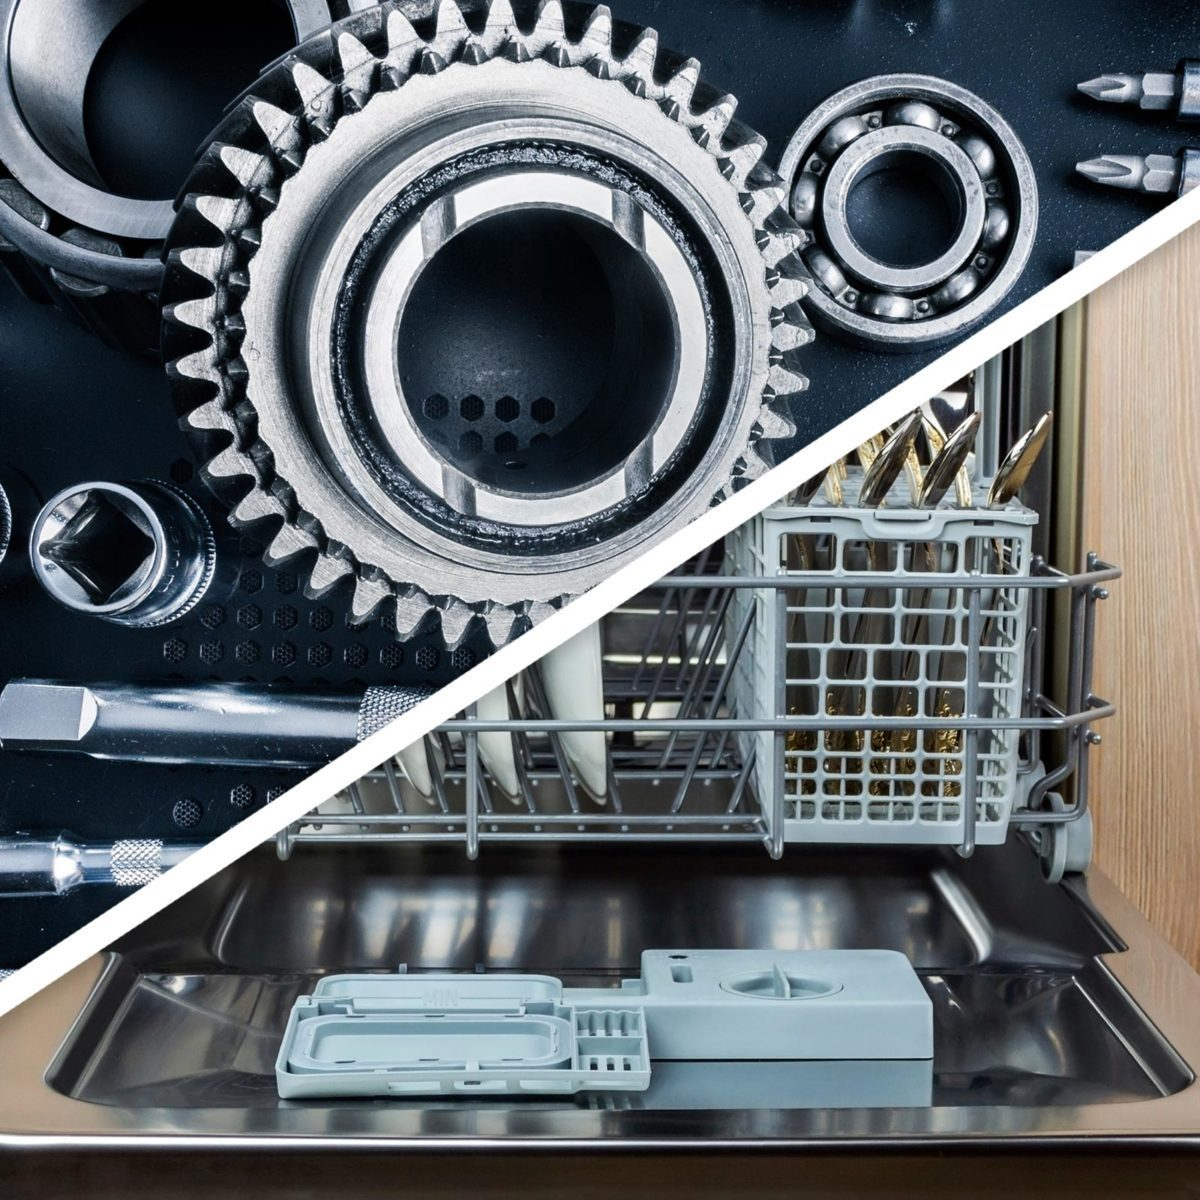 Car parts and dishwasher